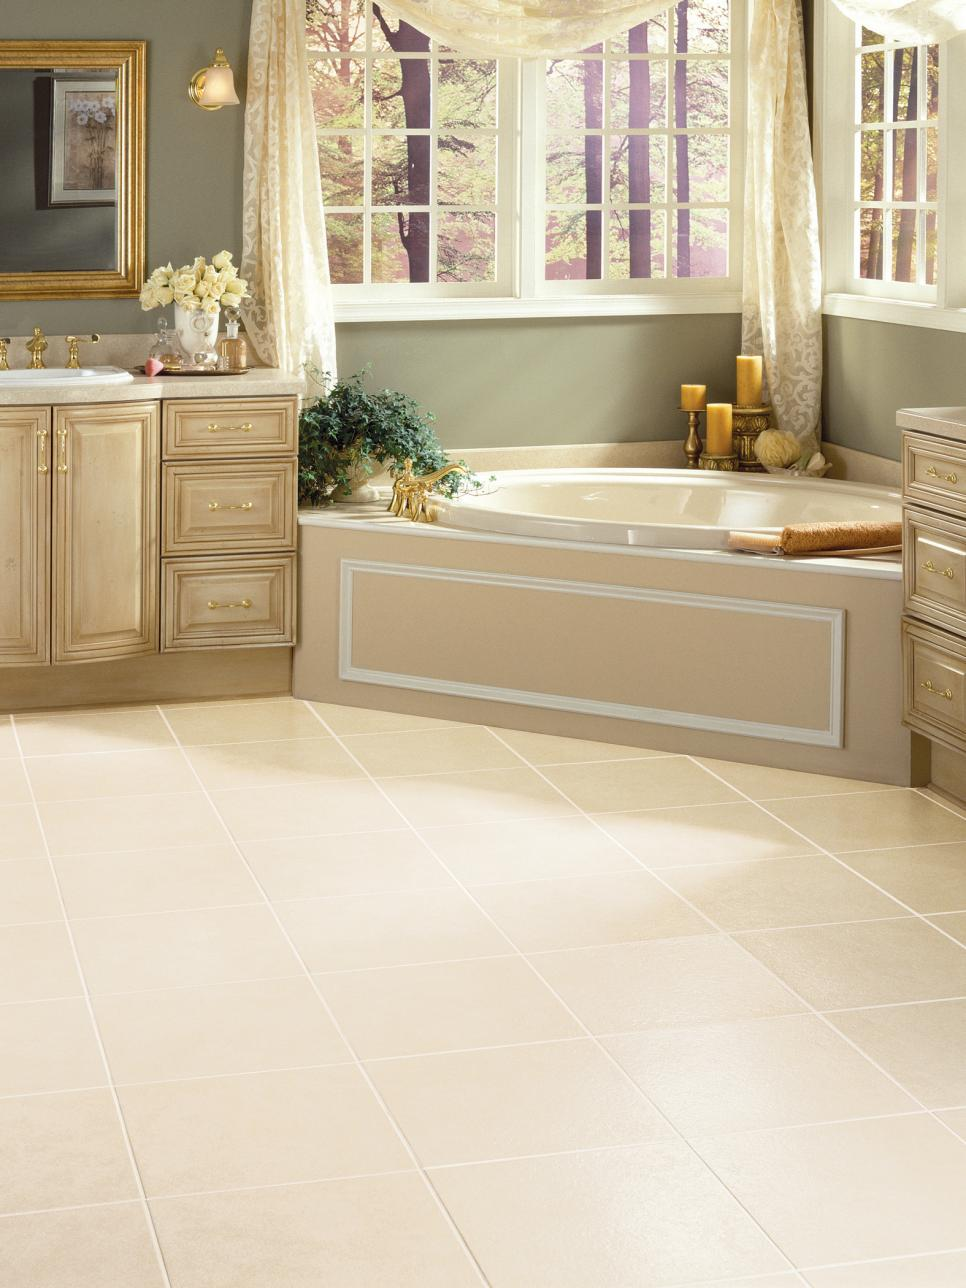 Vinyl Bathroom Floors Bathroom Design - hoose Floor Plan & Bath ... - ^